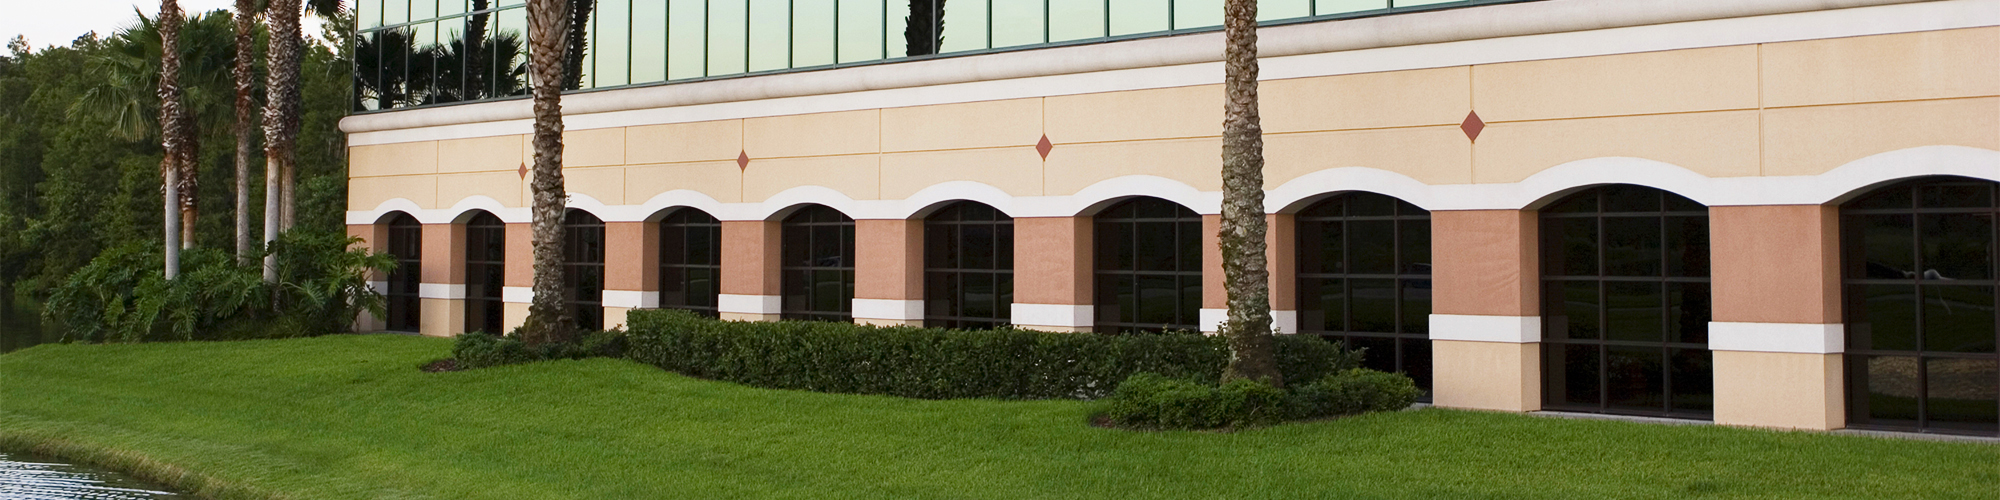 Commercial Landscaping in New Smyrna Beach, FL